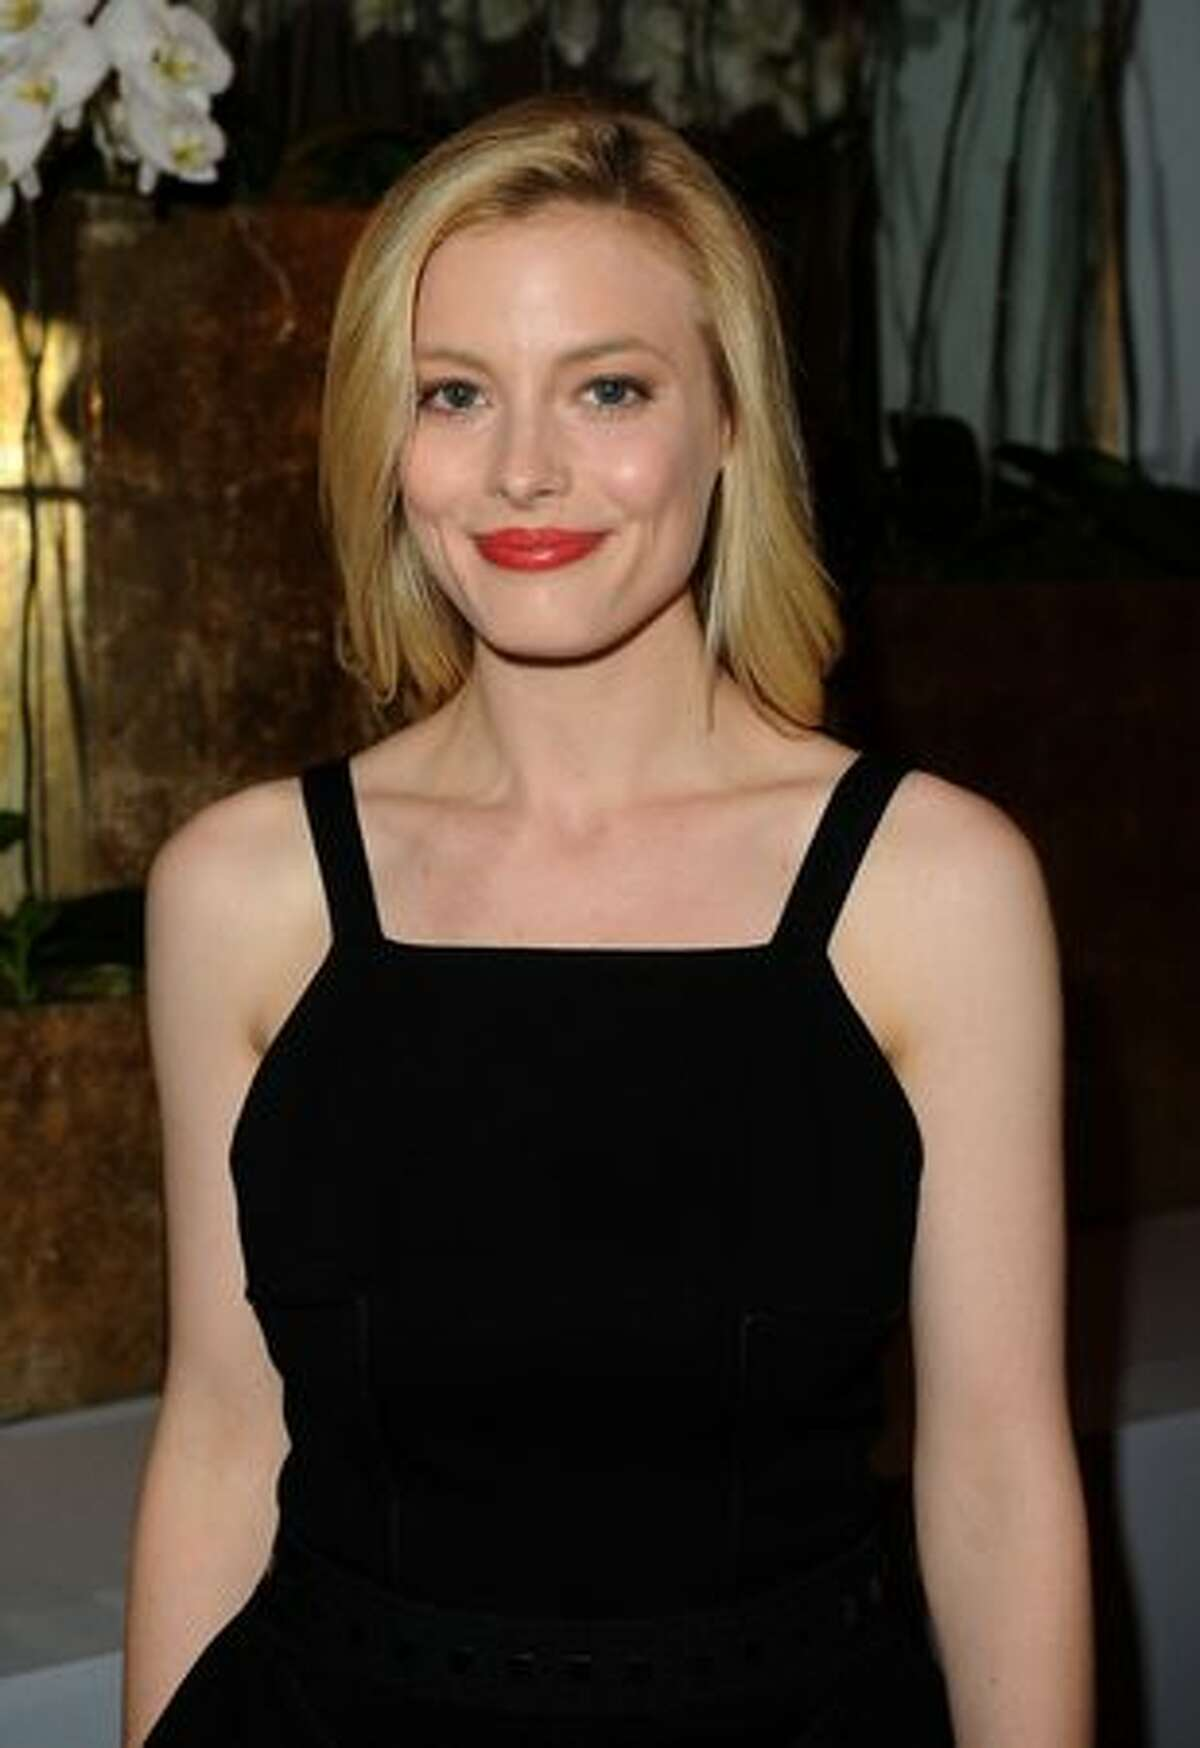 Actress Gillian Jacobs attends ELLE's 17th Annual Women in Hollywood Tribute at The Four Seasons Hotel in Beverly Hills, California.